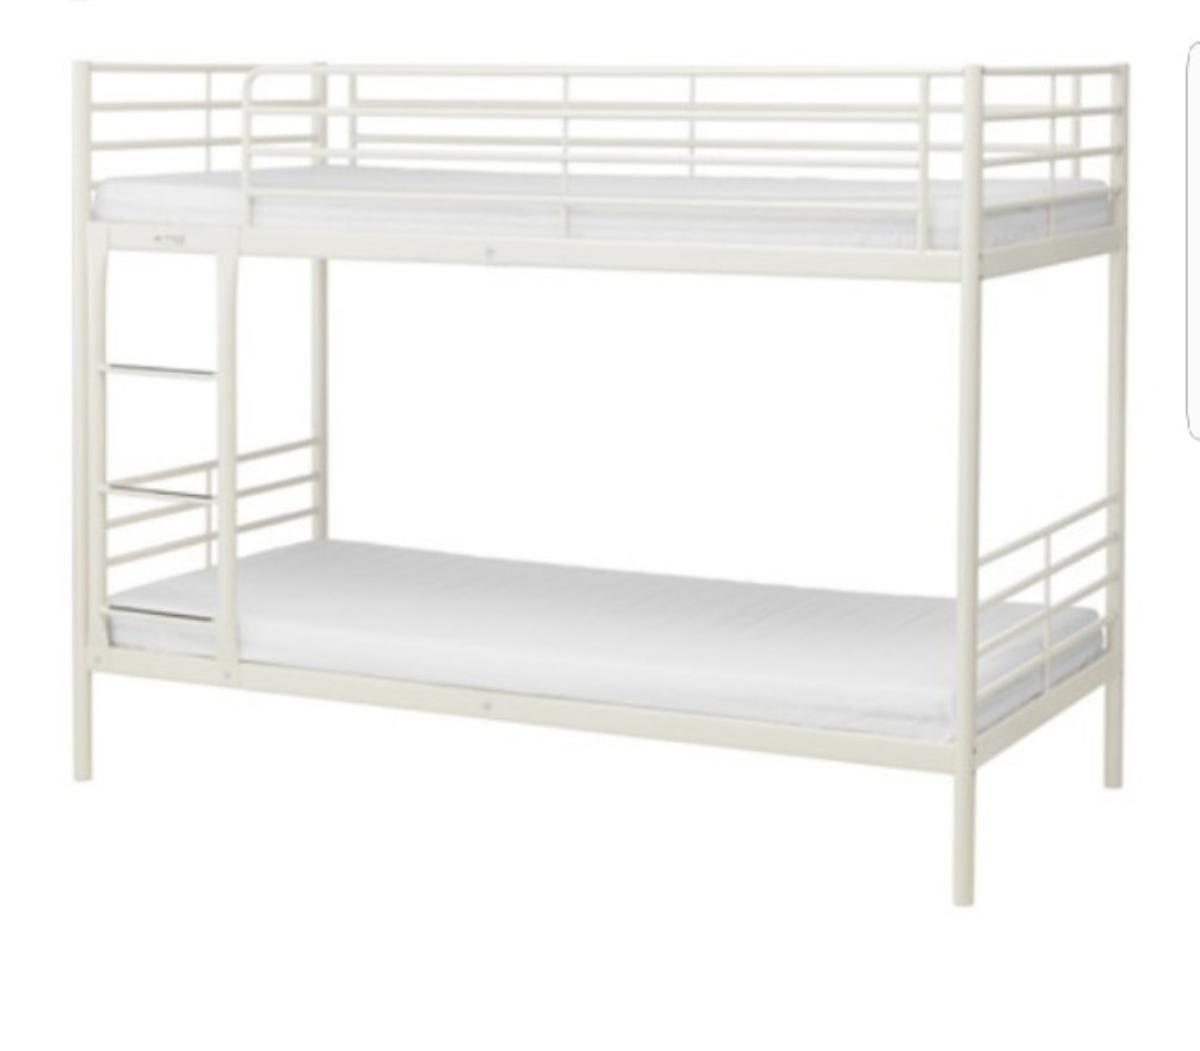 Picture of: Ikea Svarta Bunk Bed White In E7 London For 80 00 For Sale Shpock